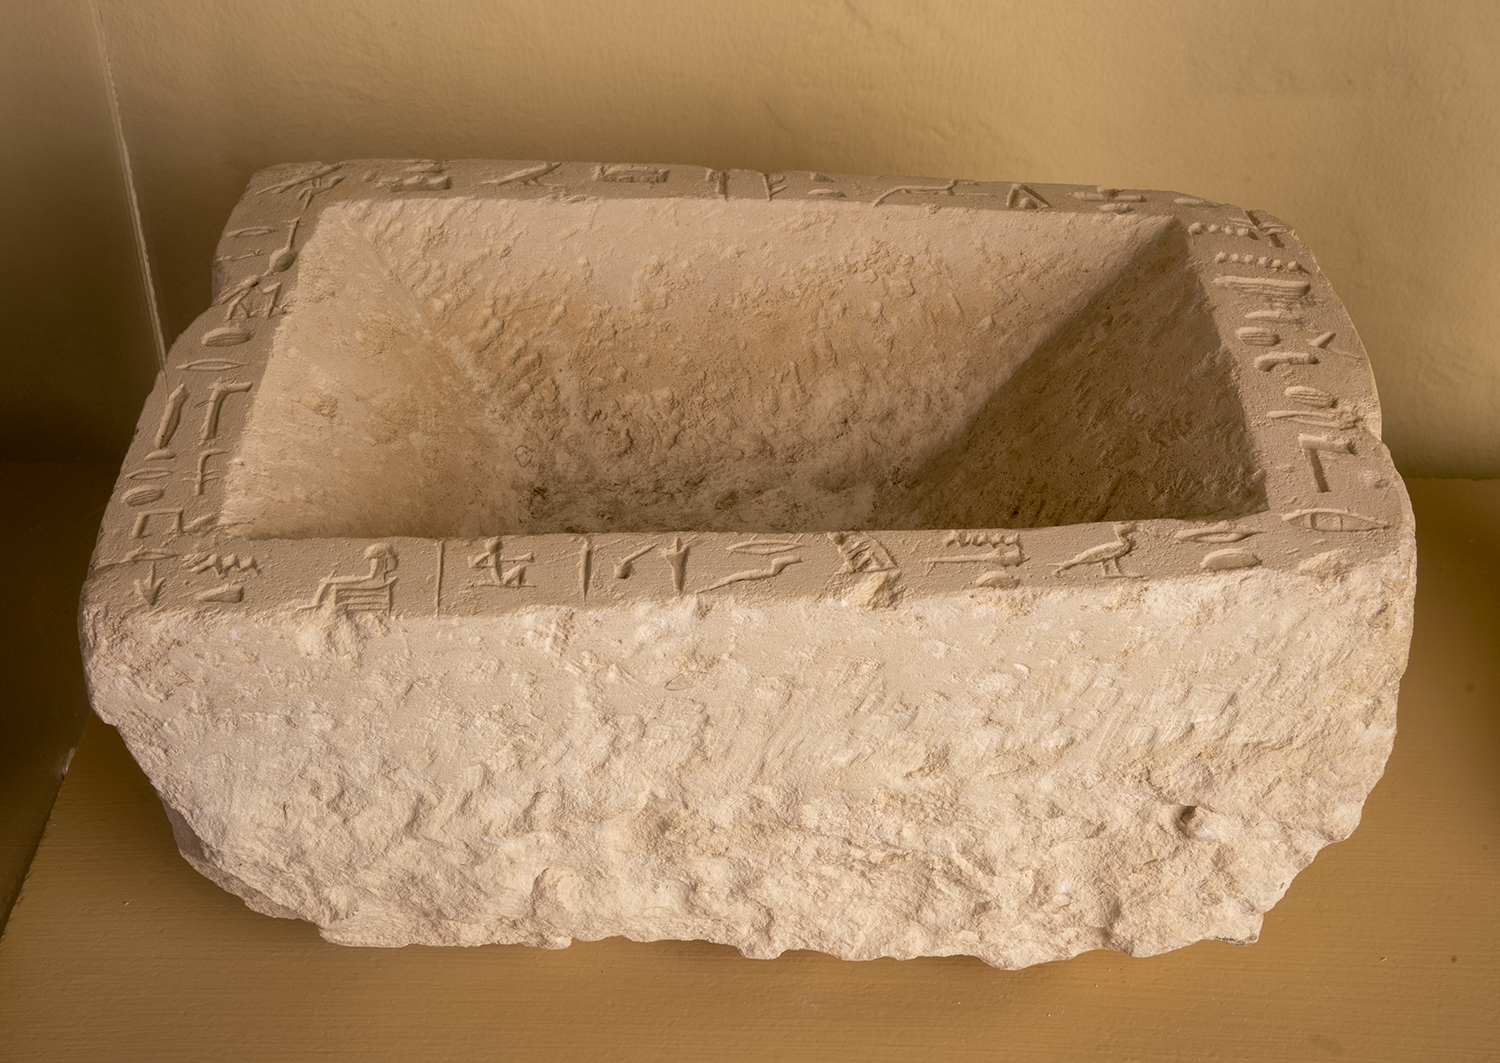 Figure 24: Limestone offering basin of Per-senet from her tomb at Giza, in Glencairn's Egyptian Gallery. This basin is on loan from the University of Pennsylvania Museum of Archaeology and Anthropology, accession number E13526.